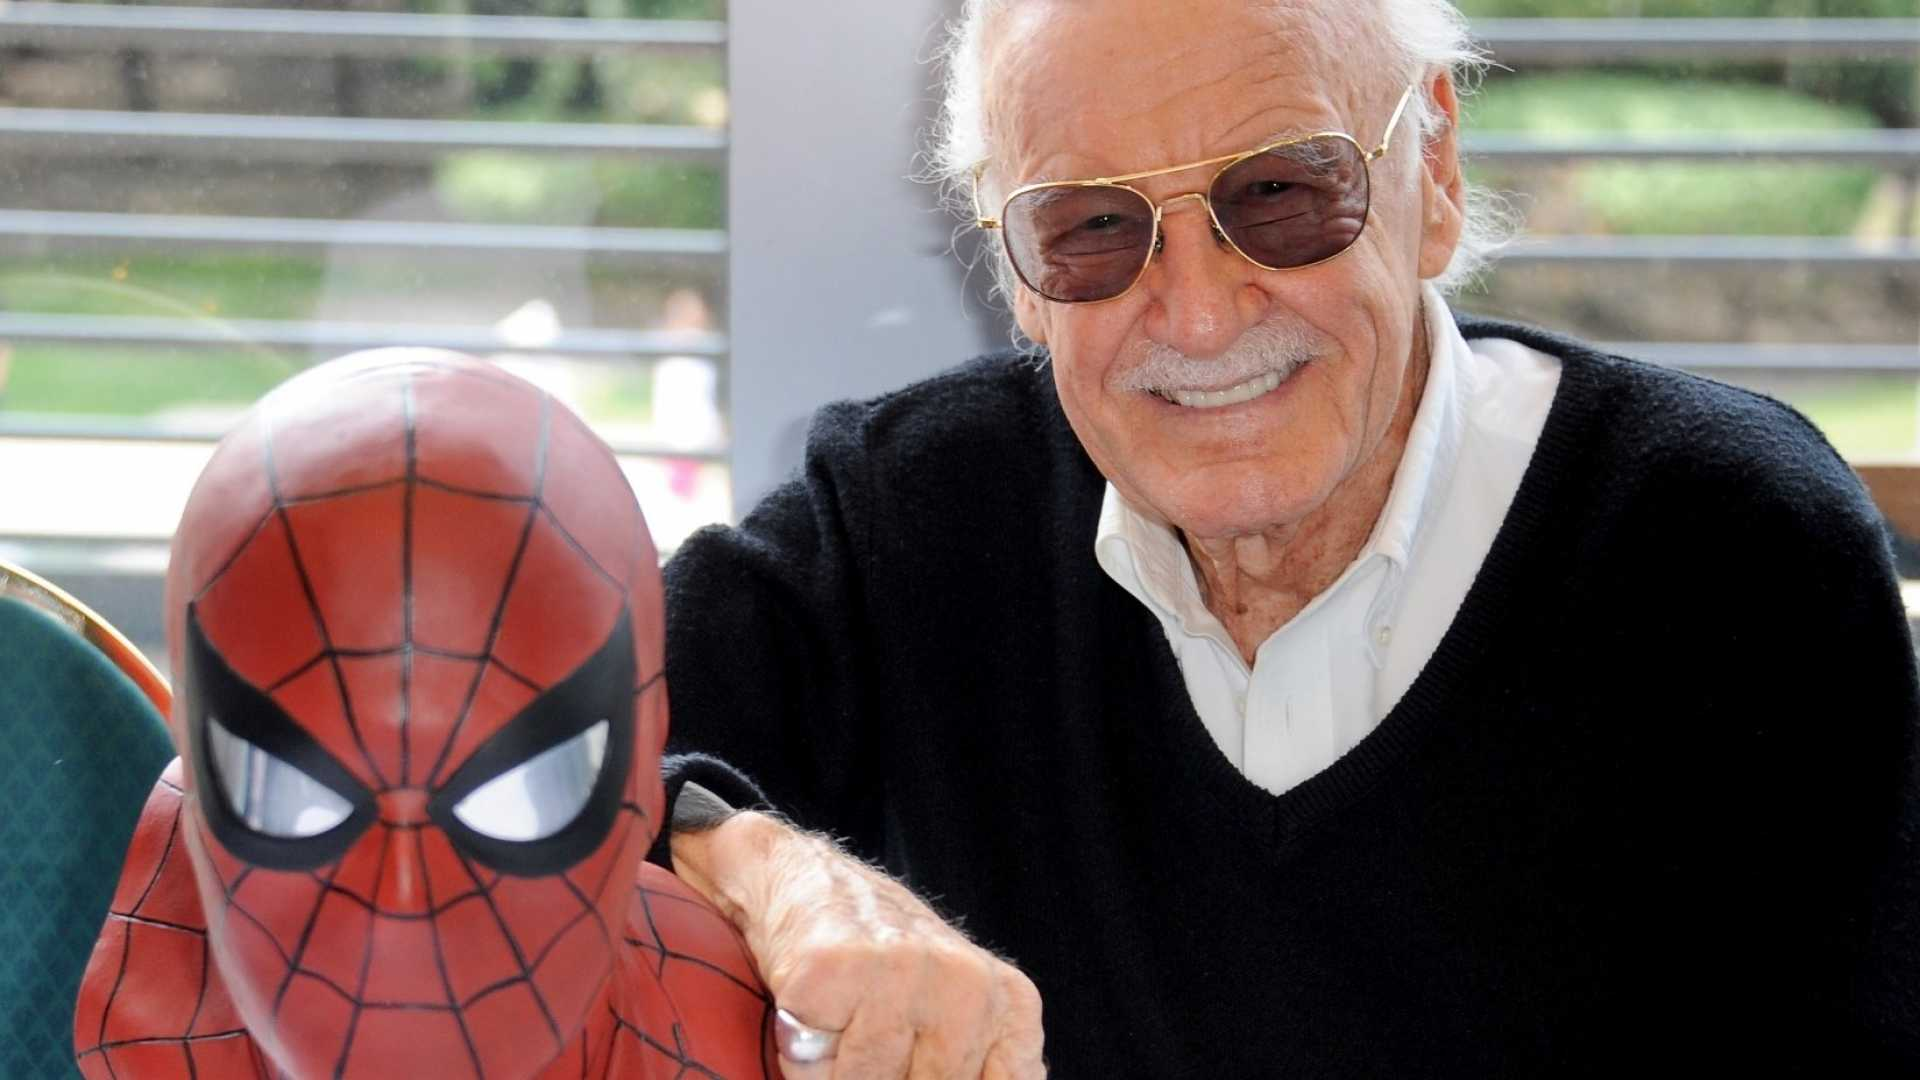 5 Practical Writing Tips Anyone Can Use From the Legendary Creator of Spider-Man